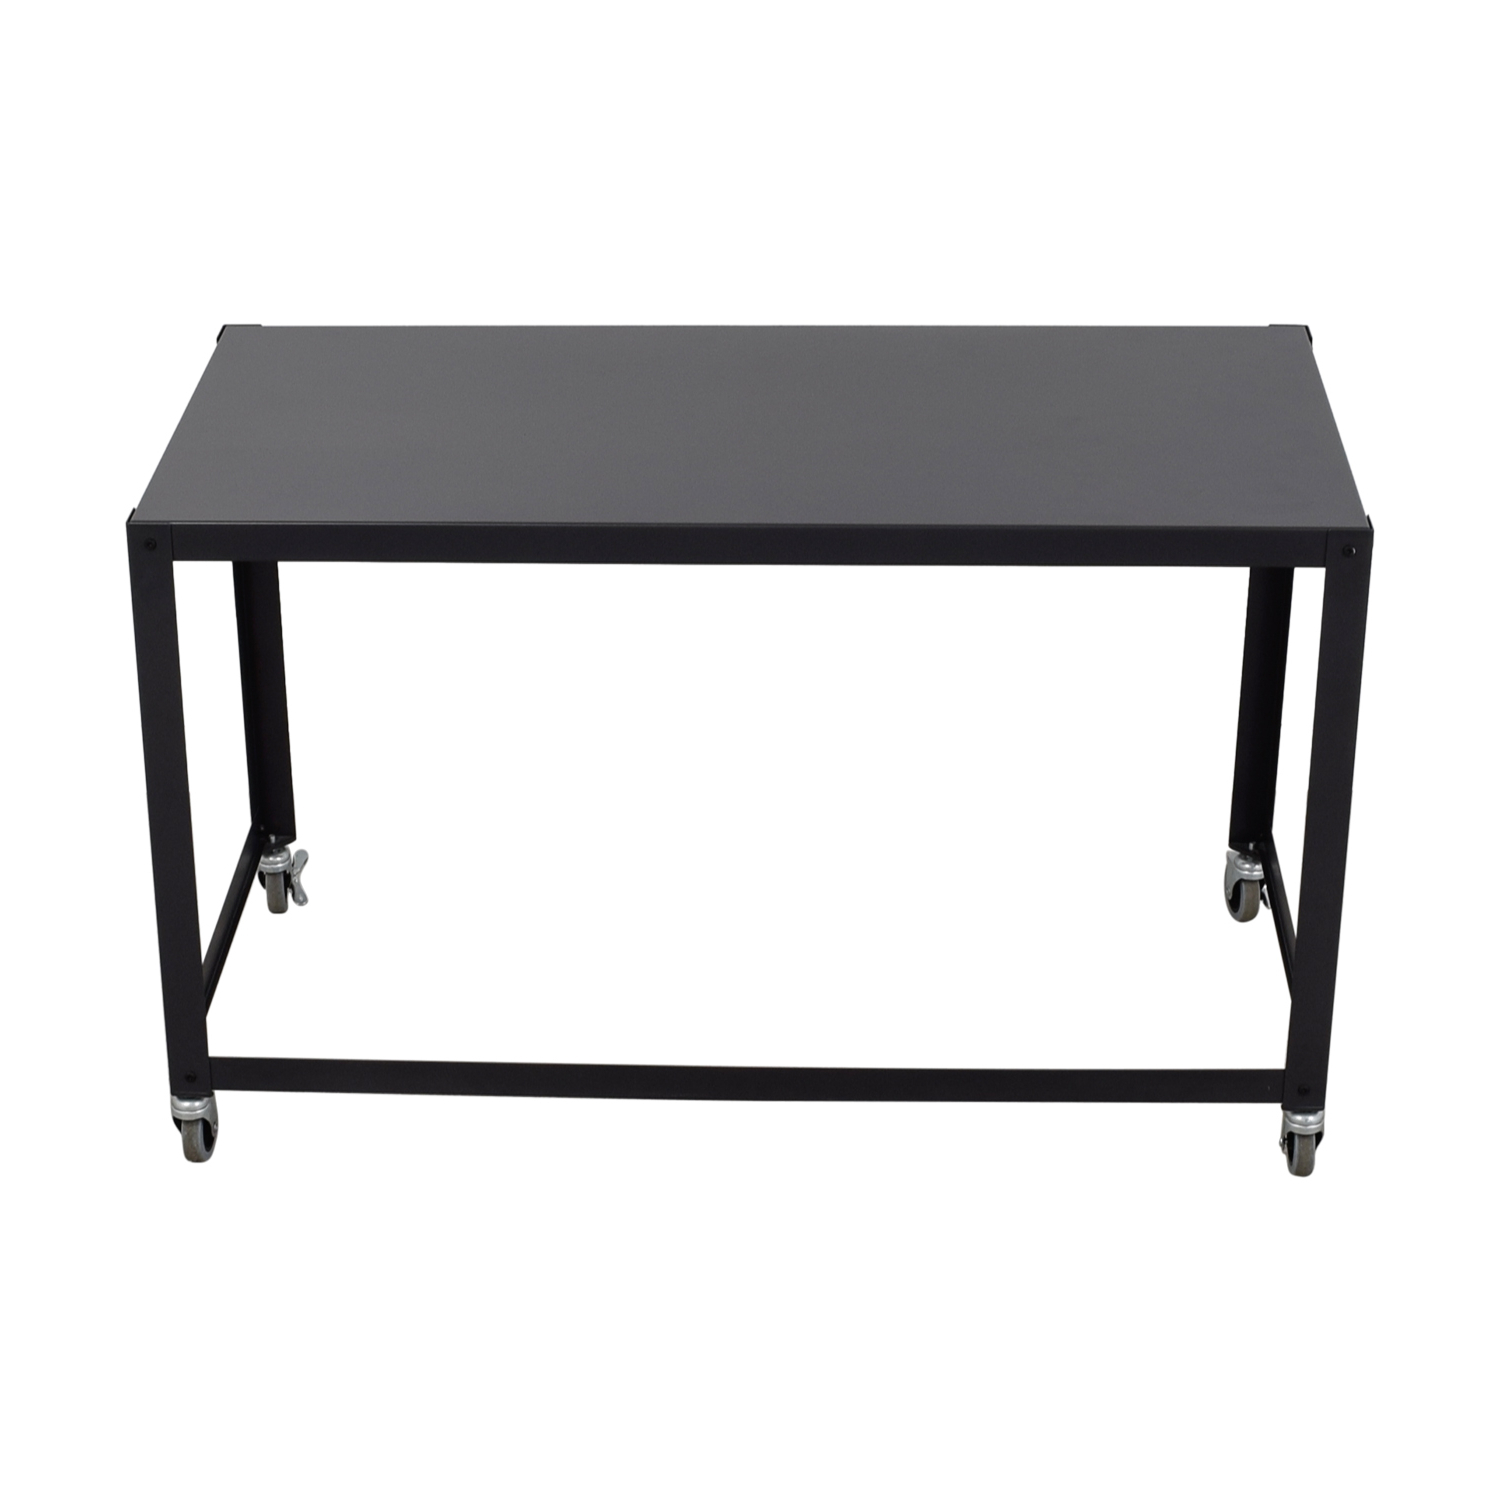 [%44% Off – Cb2 Cb2 Go Cart Rolling Desk / Tables With Most Recent Go Cart White Rolling Coffee Tables|Go Cart White Rolling Coffee Tables Regarding Famous 44% Off – Cb2 Cb2 Go Cart Rolling Desk / Tables|Well Liked Go Cart White Rolling Coffee Tables Throughout 44% Off – Cb2 Cb2 Go Cart Rolling Desk / Tables|Best And Newest 44% Off – Cb2 Cb2 Go Cart Rolling Desk / Tables Inside Go Cart White Rolling Coffee Tables%] (View 1 of 20)